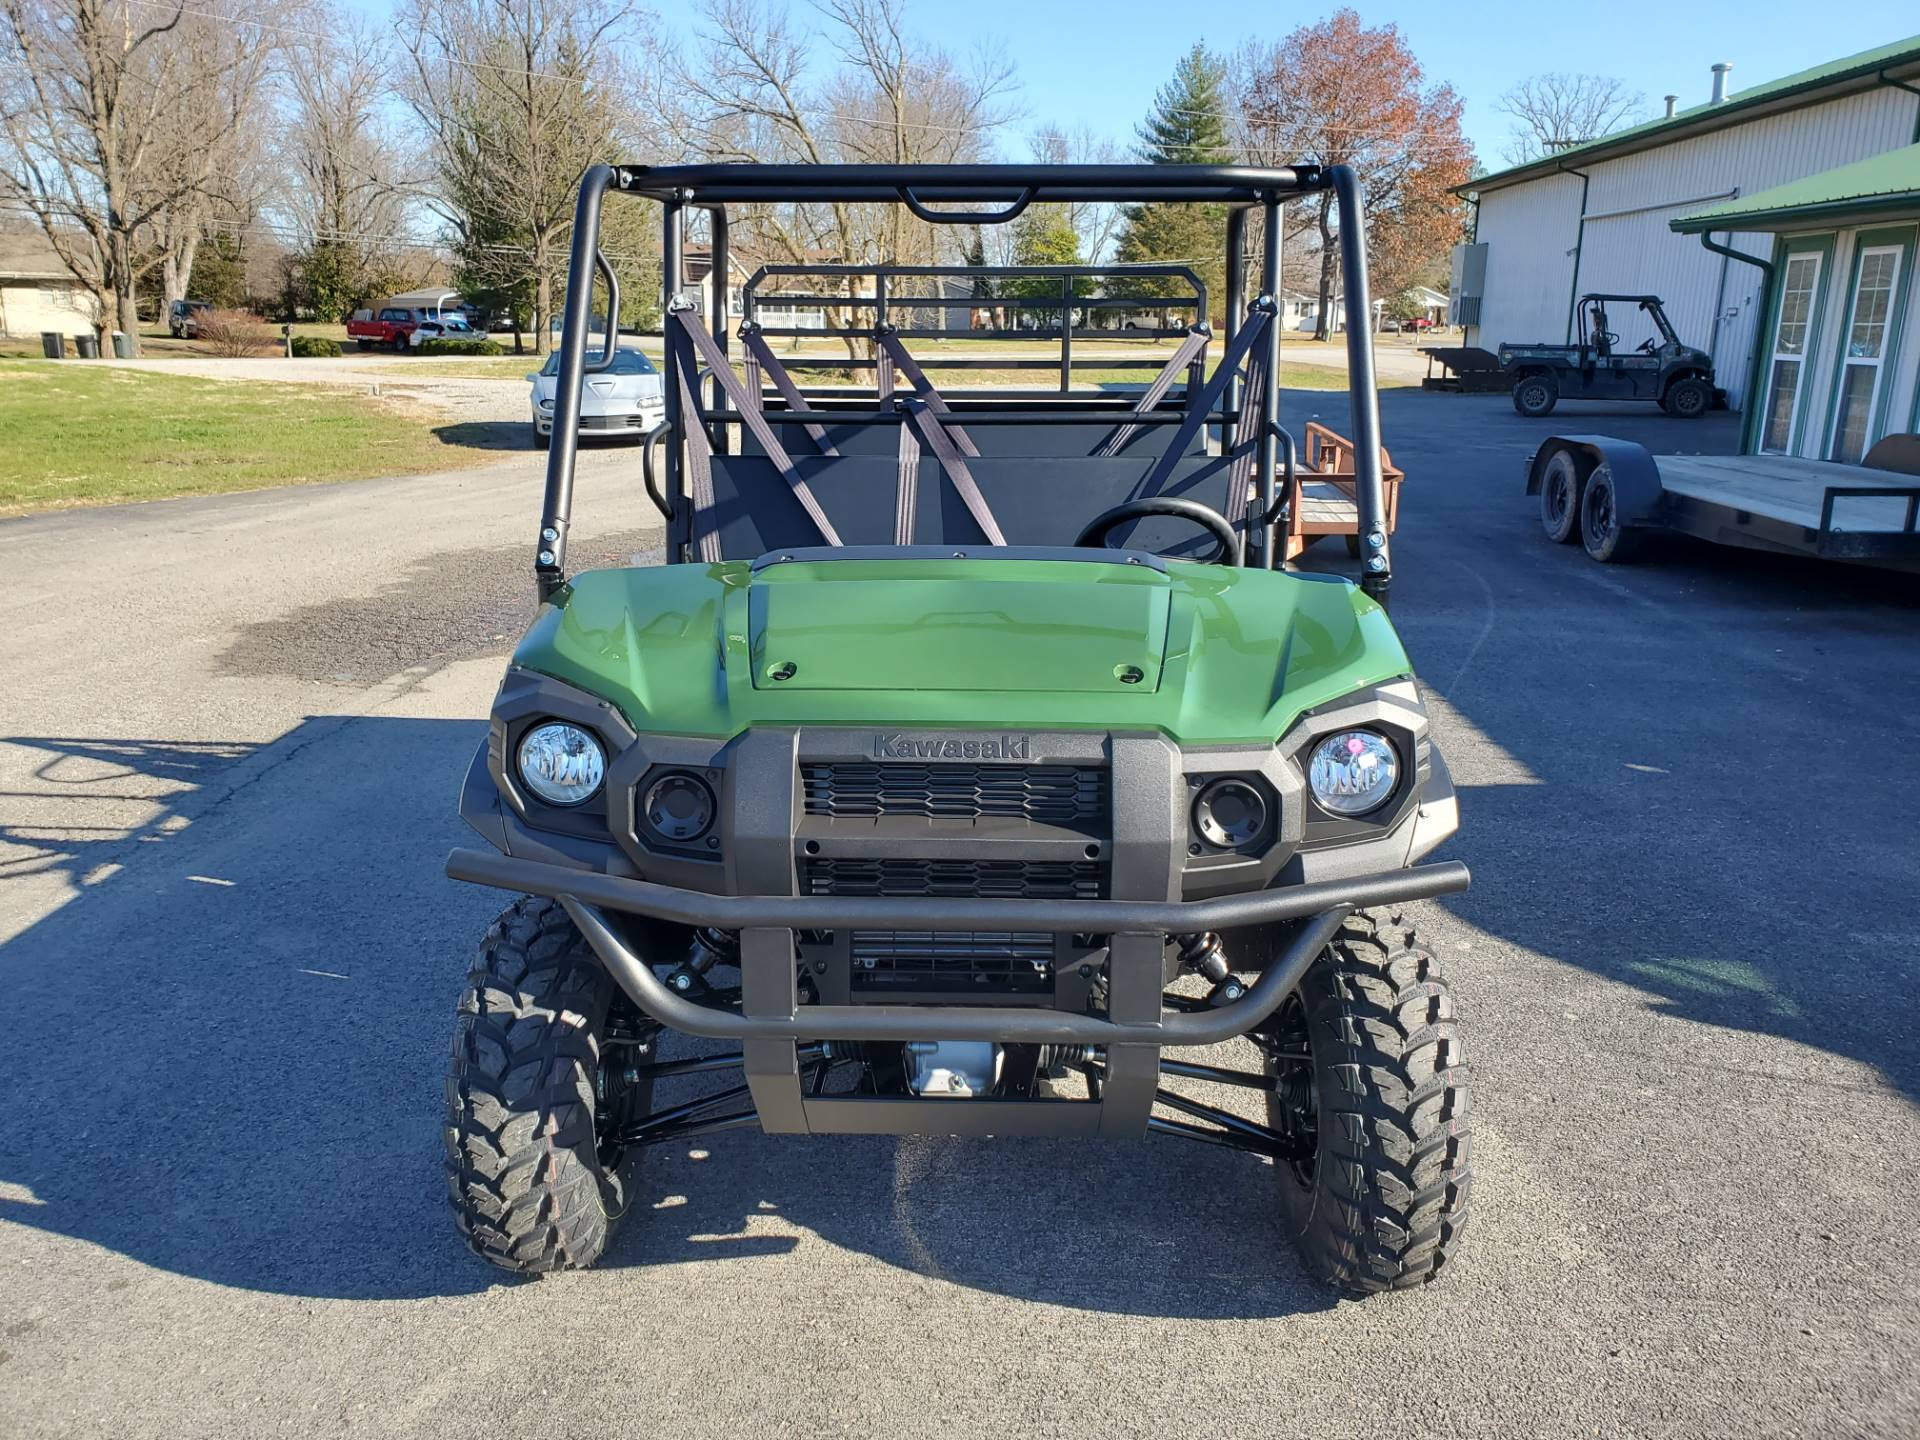 2021 Kawasaki Mule PRO-FXT EPS in Herrin, Illinois - Photo 2